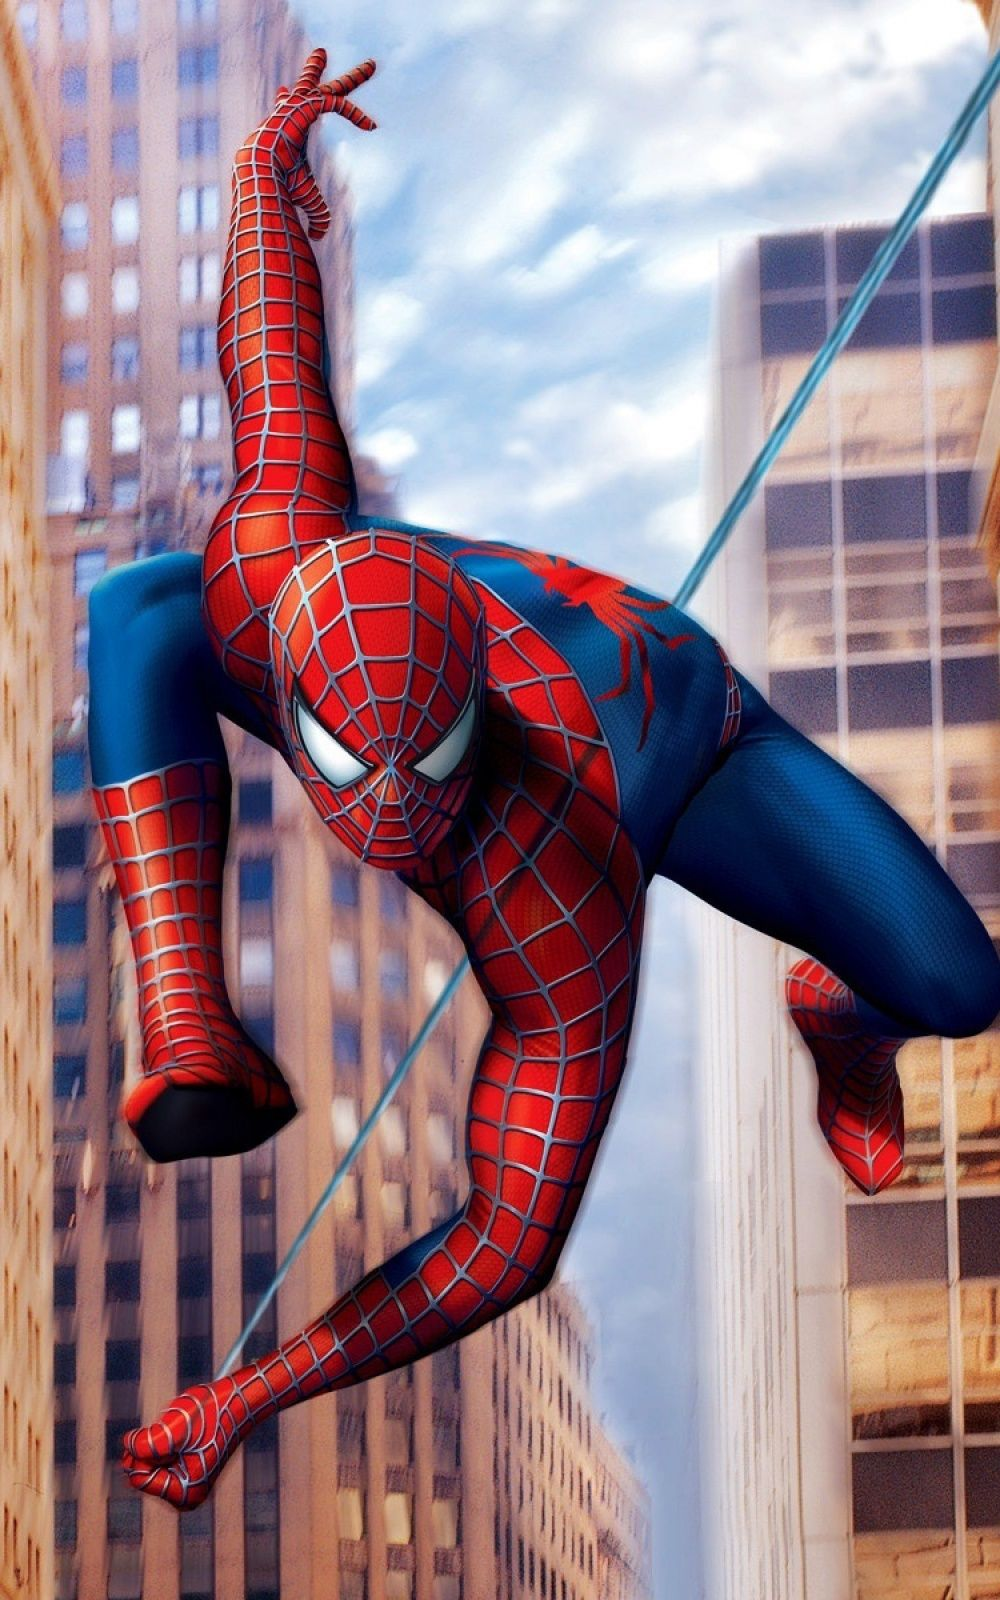 Spider-Man Tablet Wallpapers - Top Free Spider-Man Tablet ...